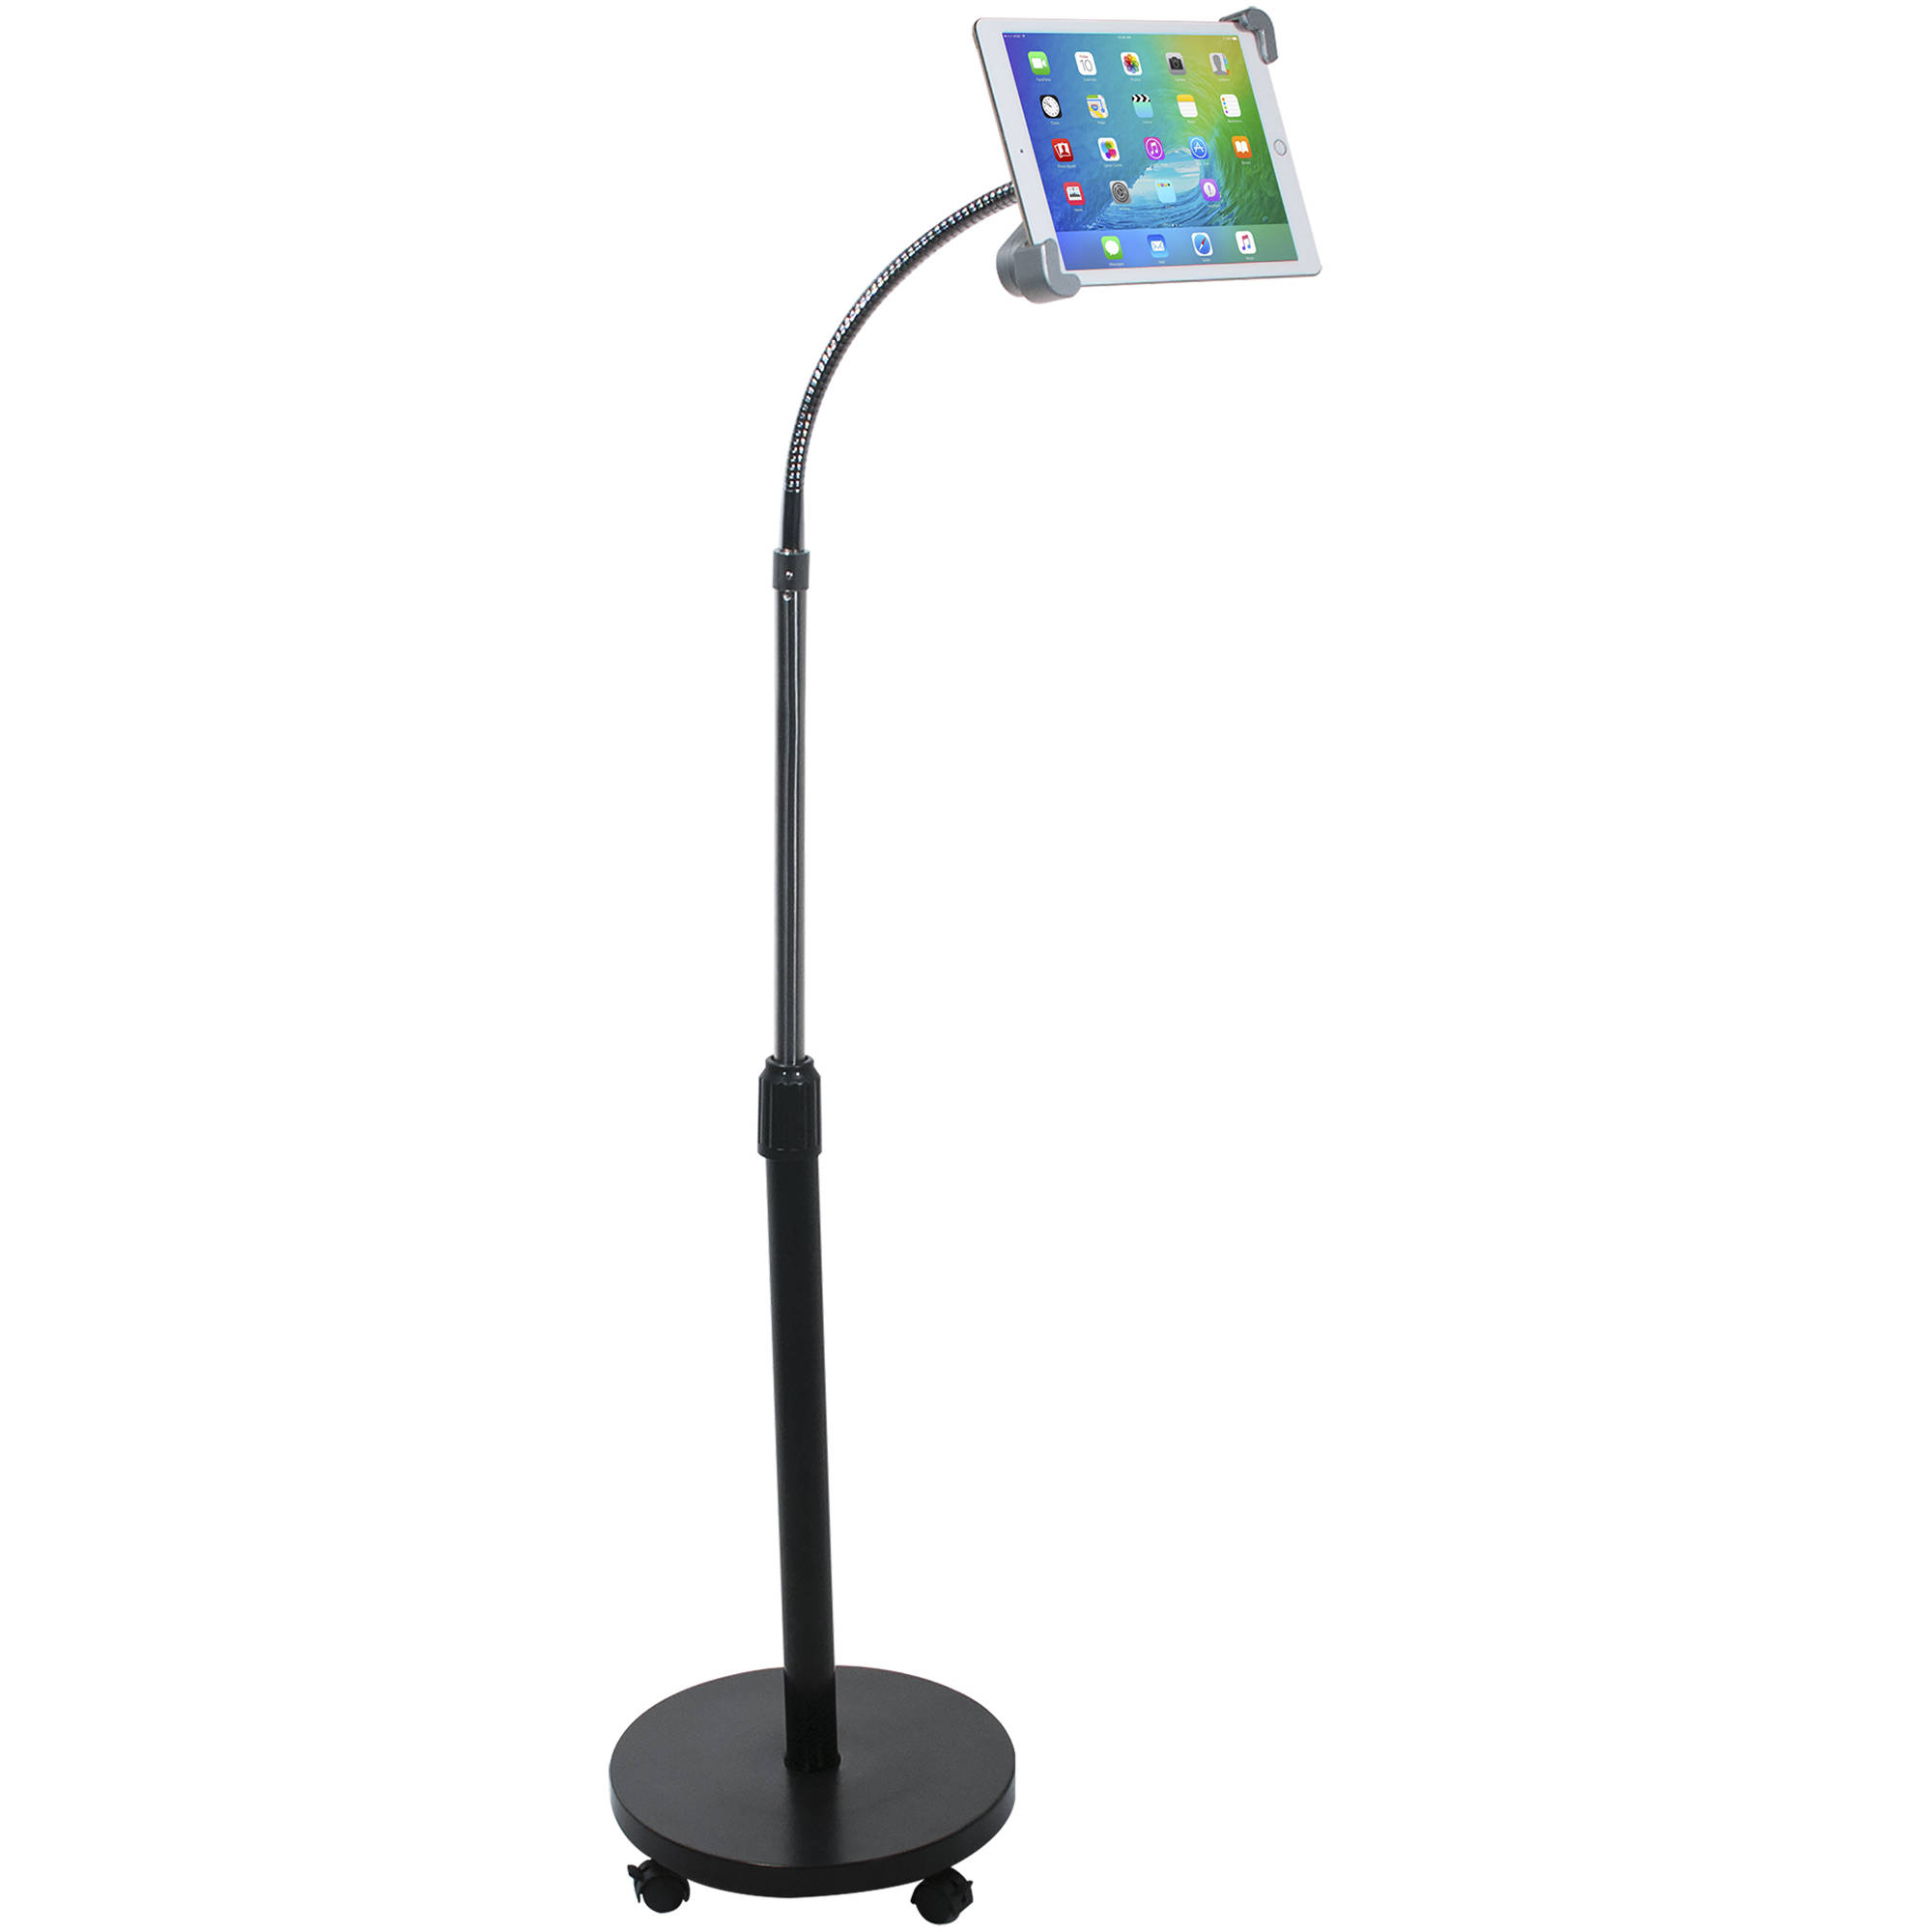 Cta Digital Security Gooseneck Floor Stand For Tablets Pad Sgf